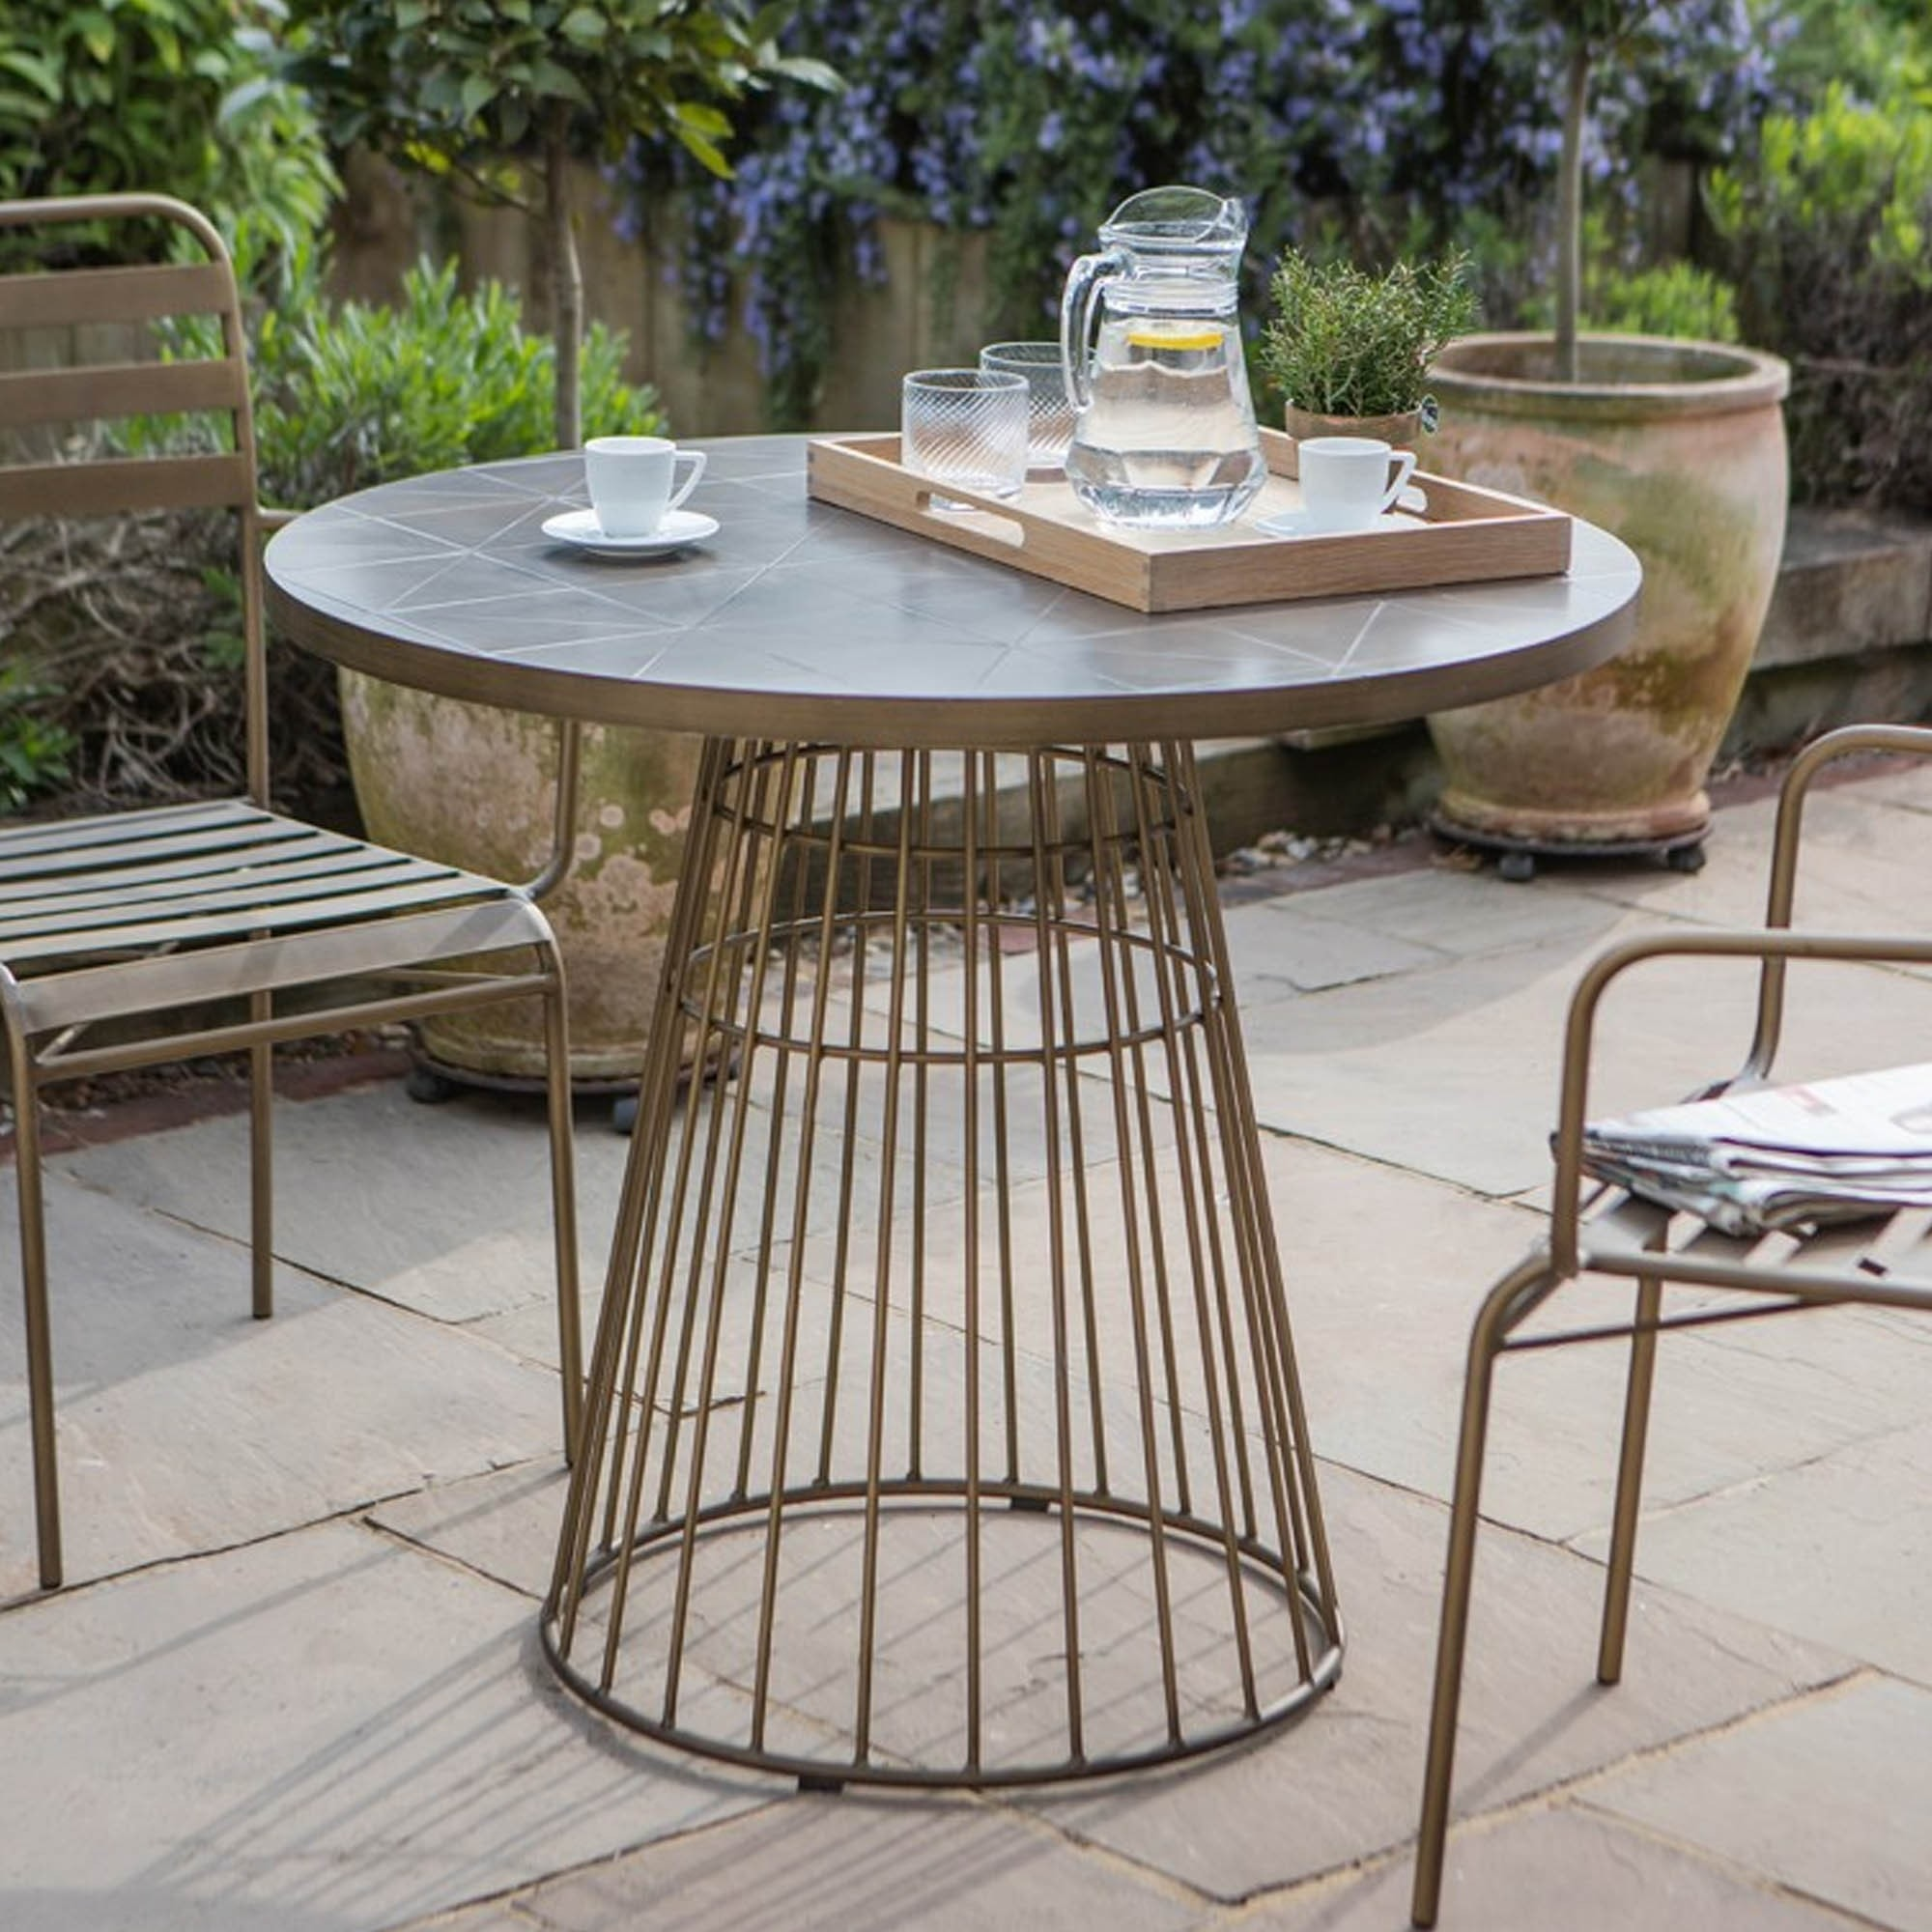 Halstow Bistro Table Outdoor Table Modern Dining Table